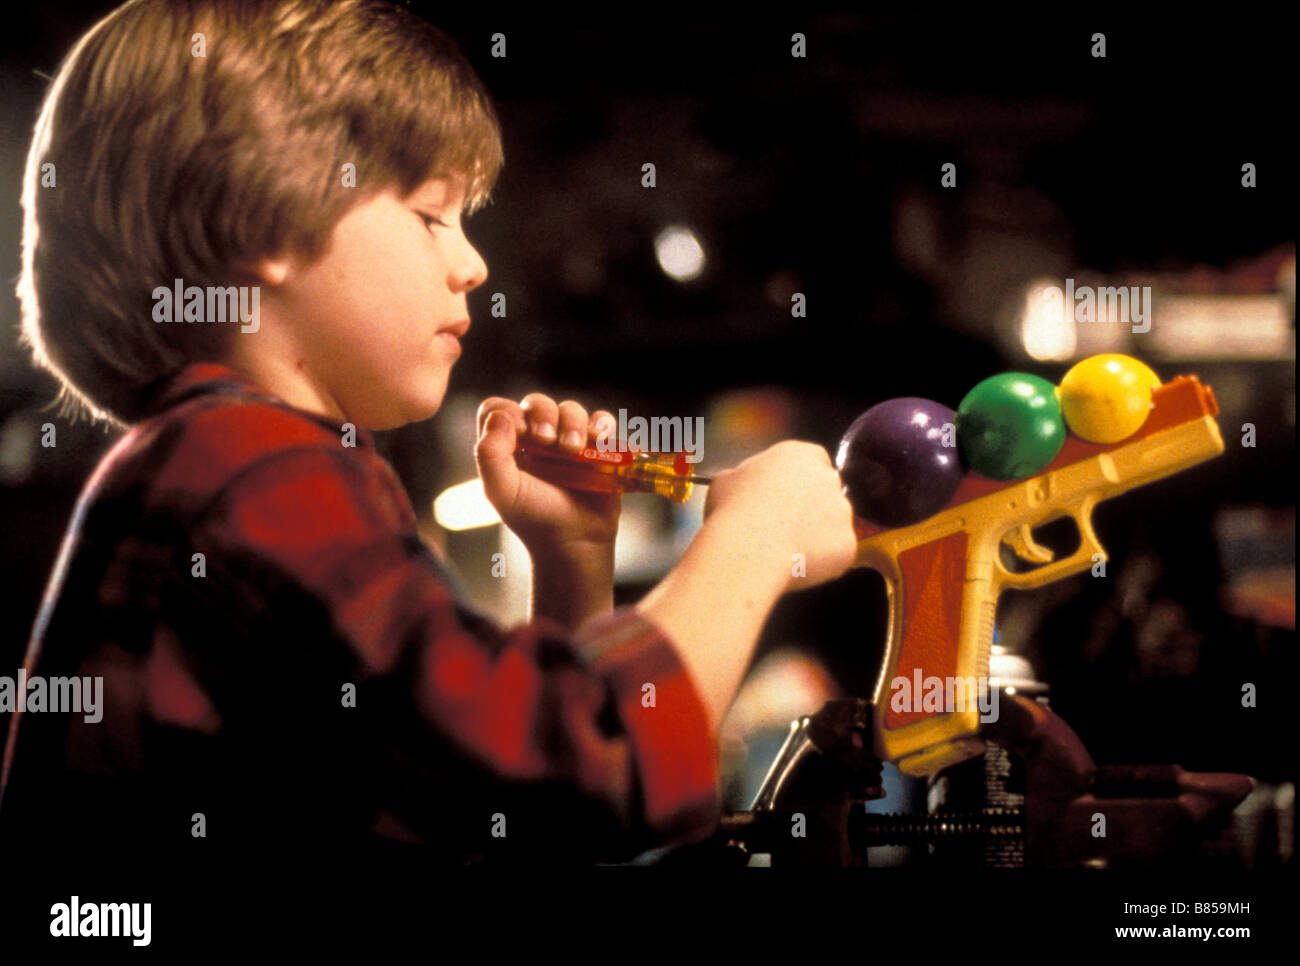 Home Alone 3 Year: 1997 USA Director : Raja Gosnell Alex D. Linz - Stock Image